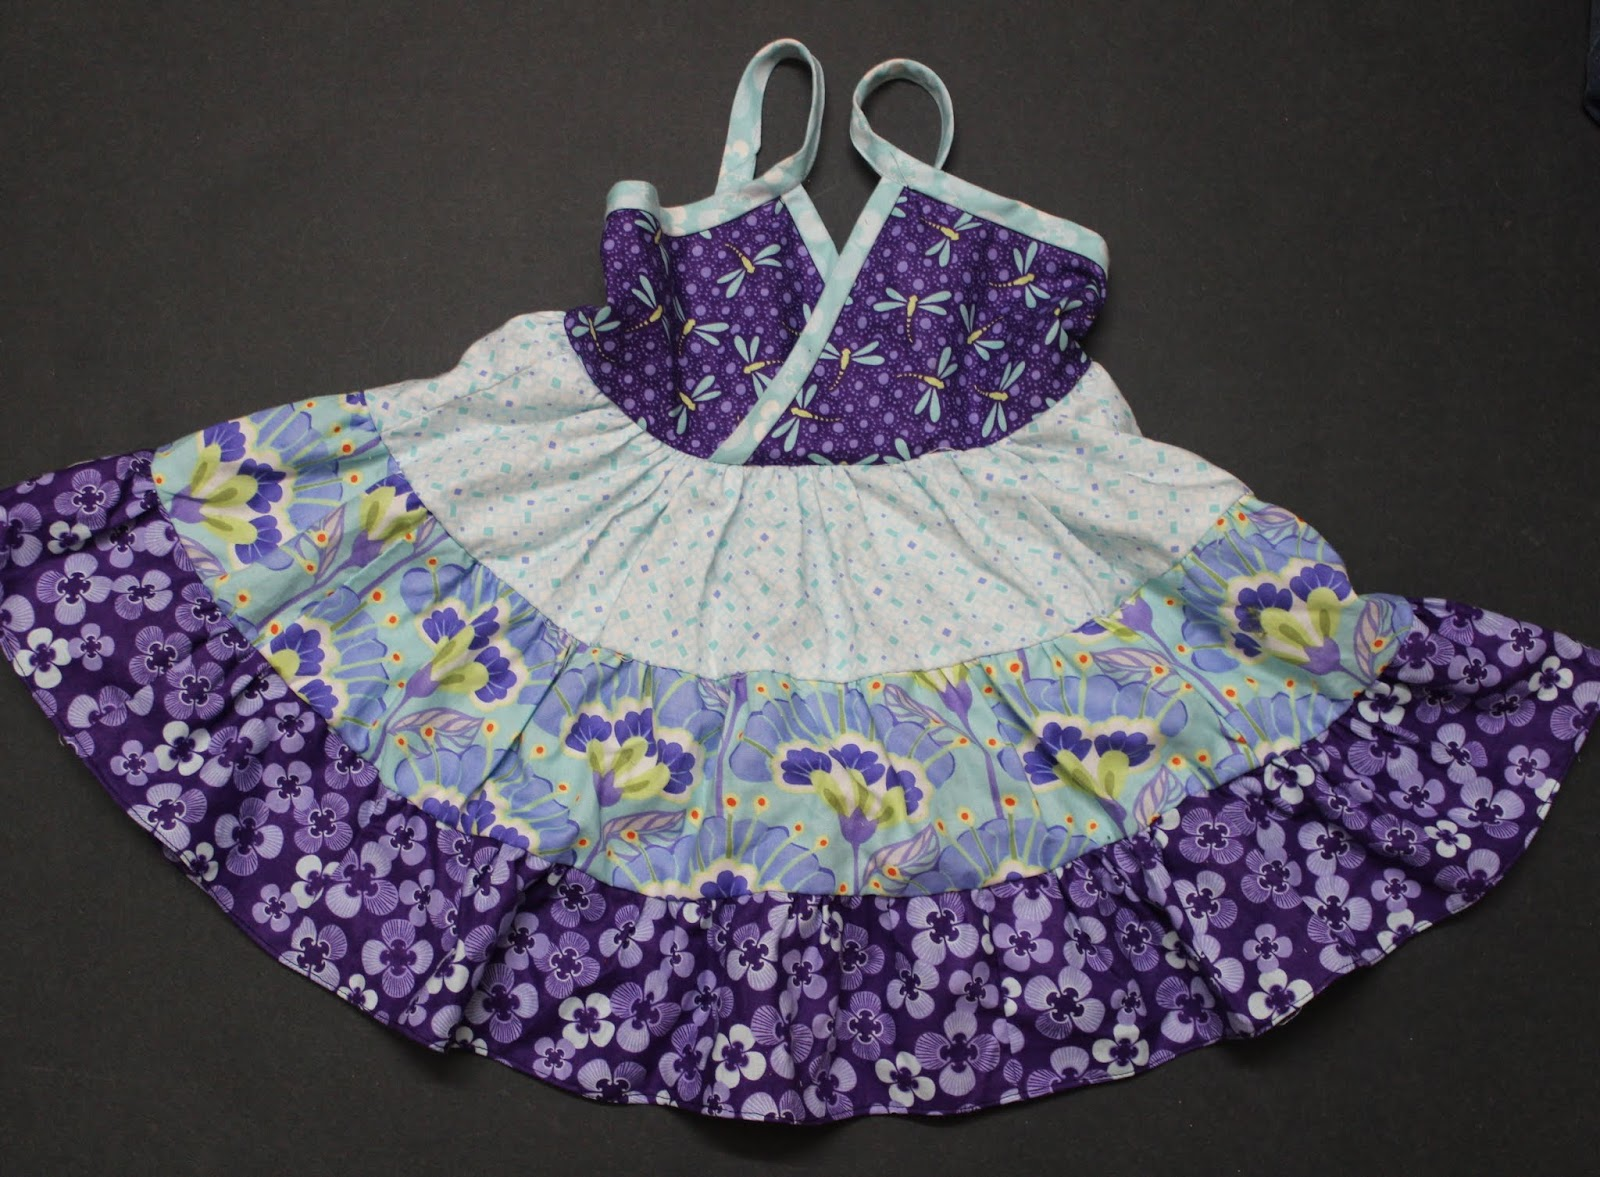 lucky-layers-tiered-dress-in-size-2t